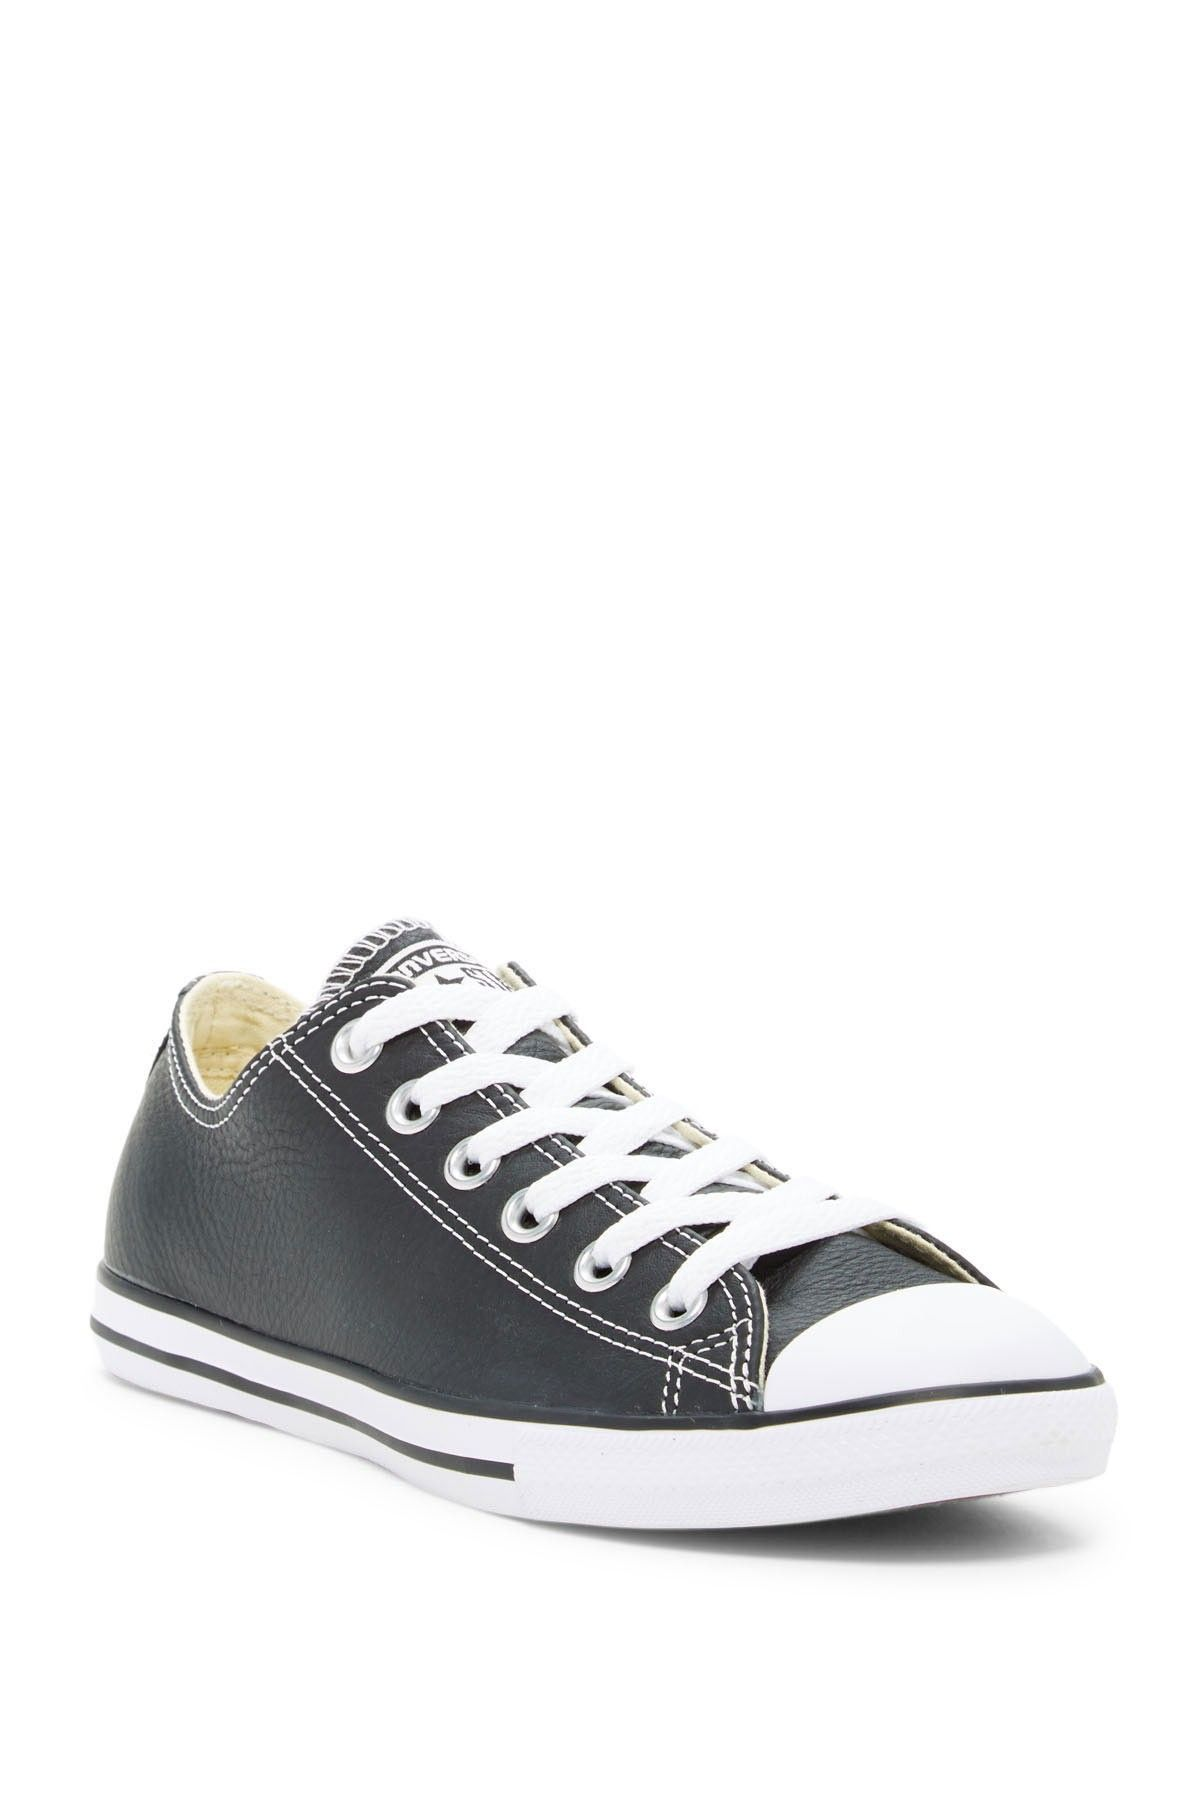 647cbb48ebb4 Chuck Taylor(R) All Star(R) Lean Ox Low Top Sneaker (Unisex) by Converse on   nordstrom rack